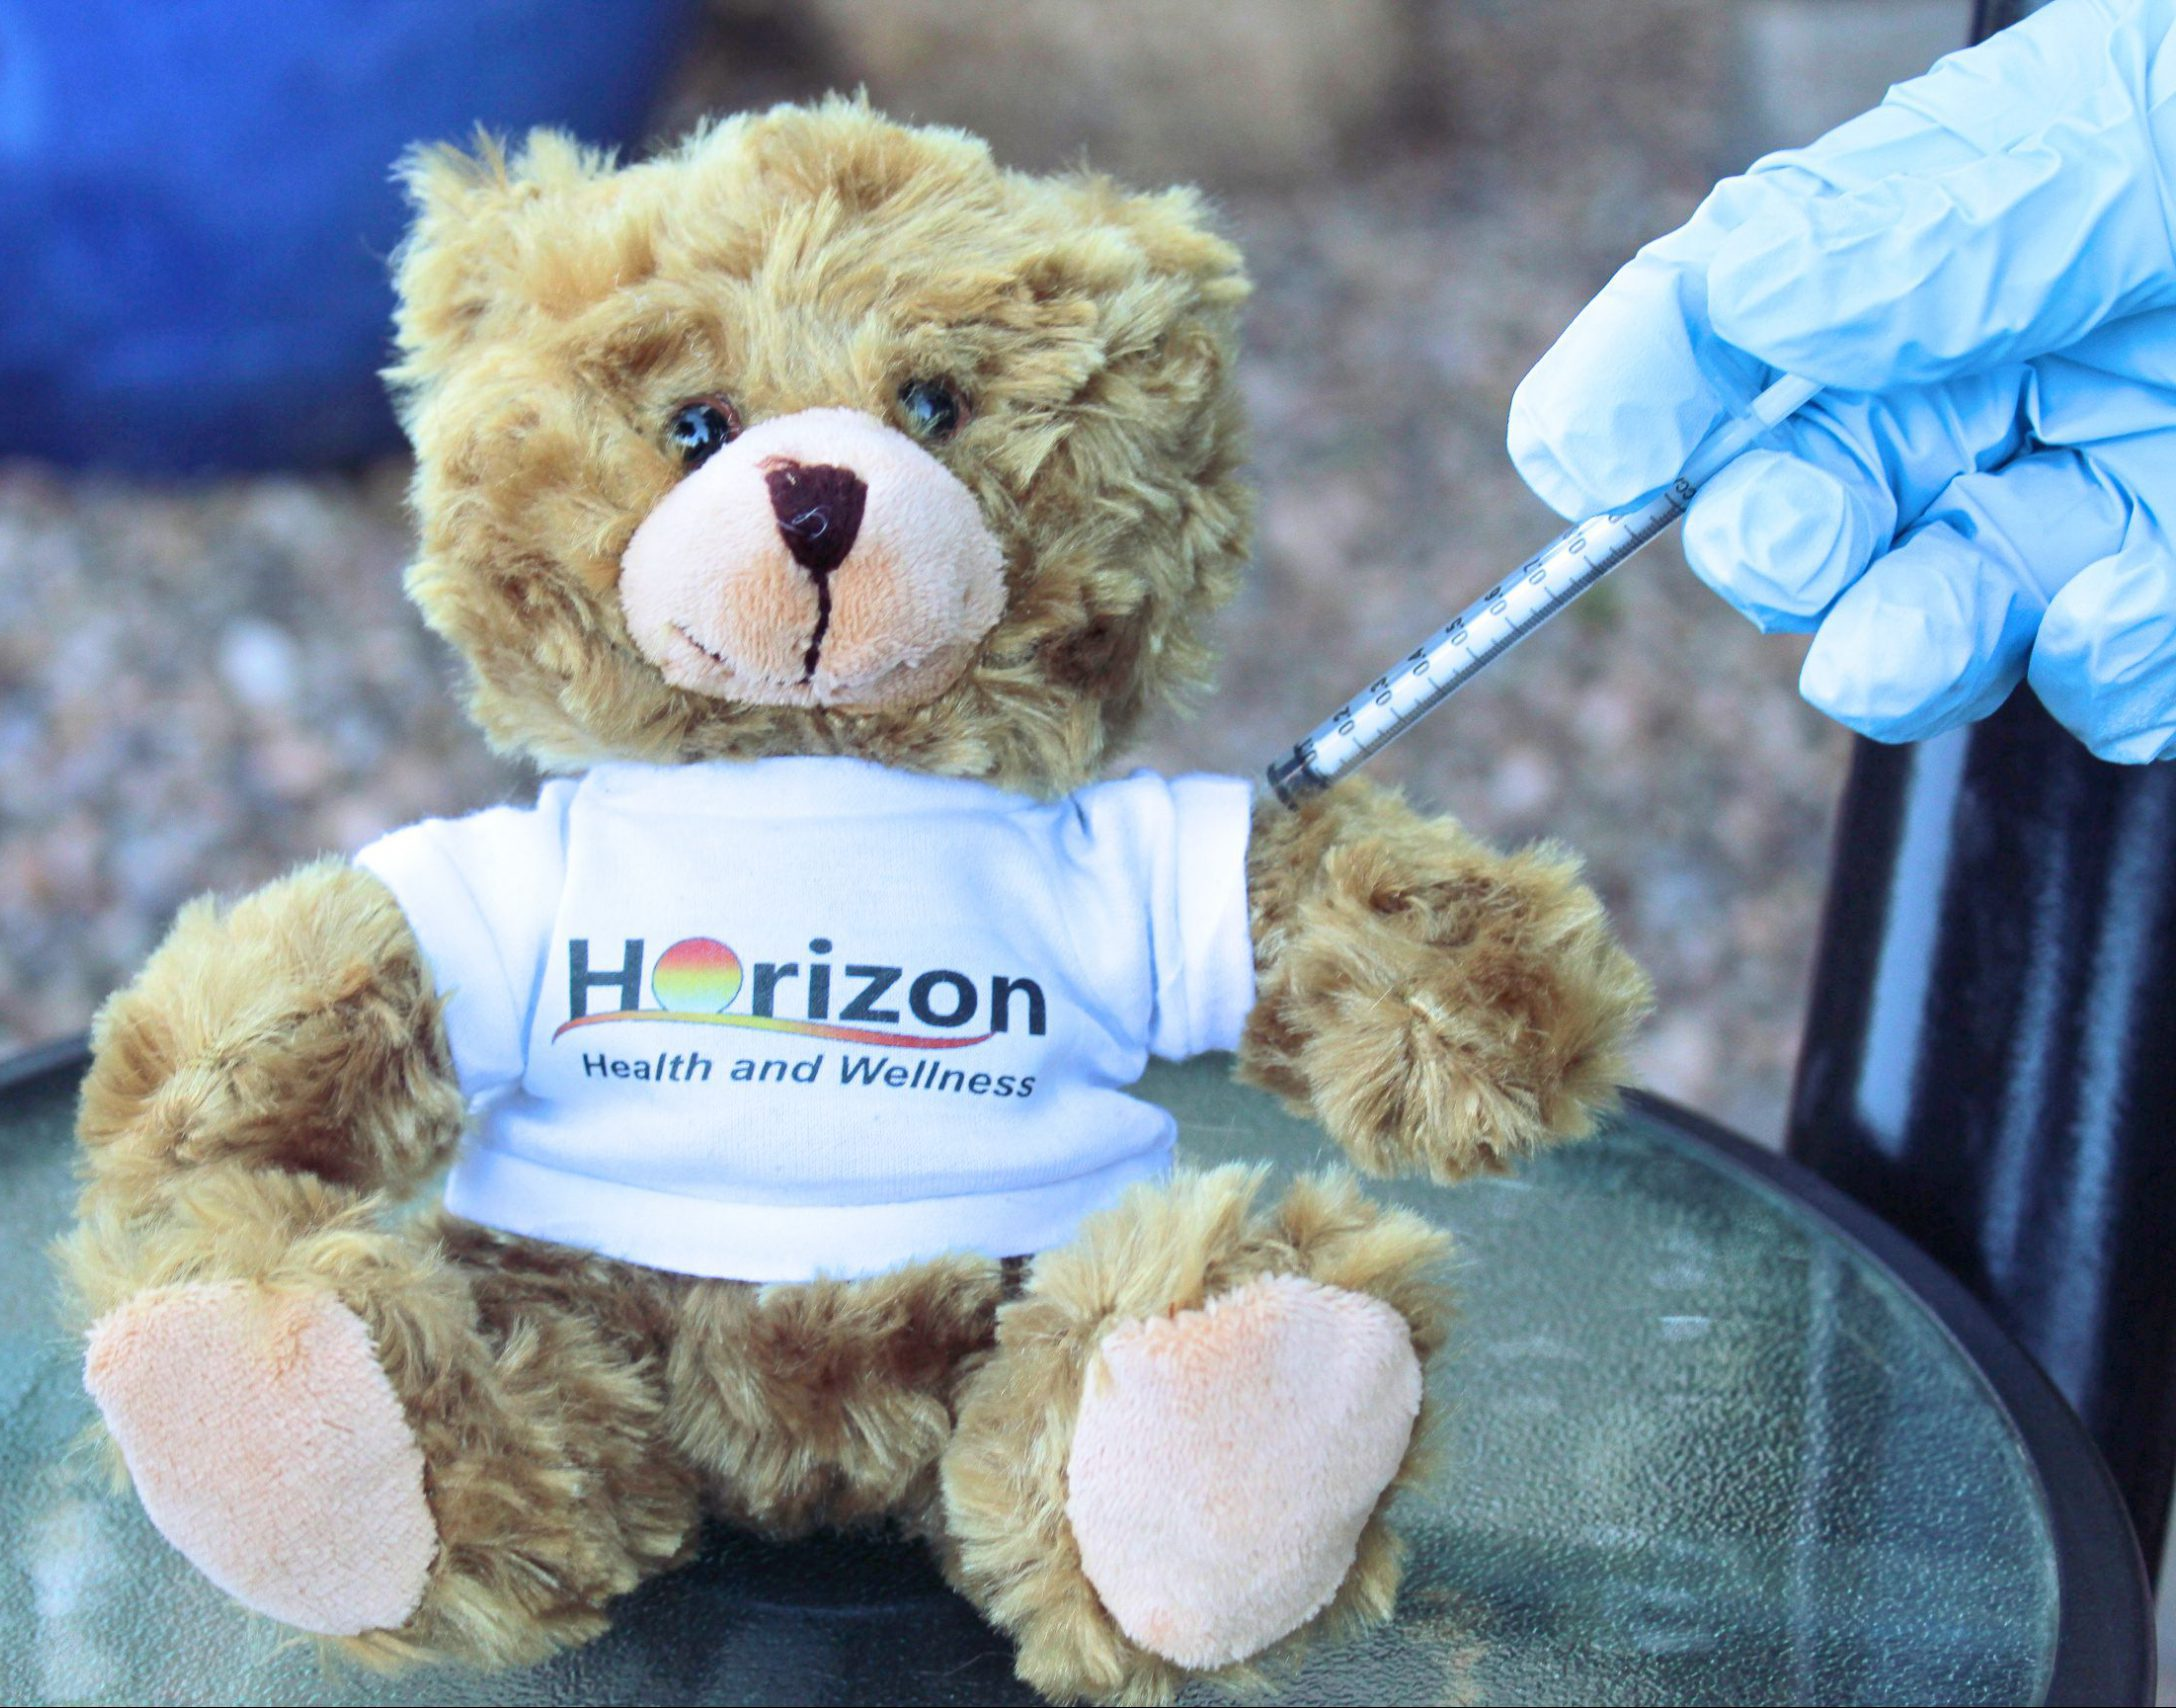 A hand with a glove giving a brown, stuffed bear wearing a Horizon Health and Wellness shirt the COVID vaccine in its arm.